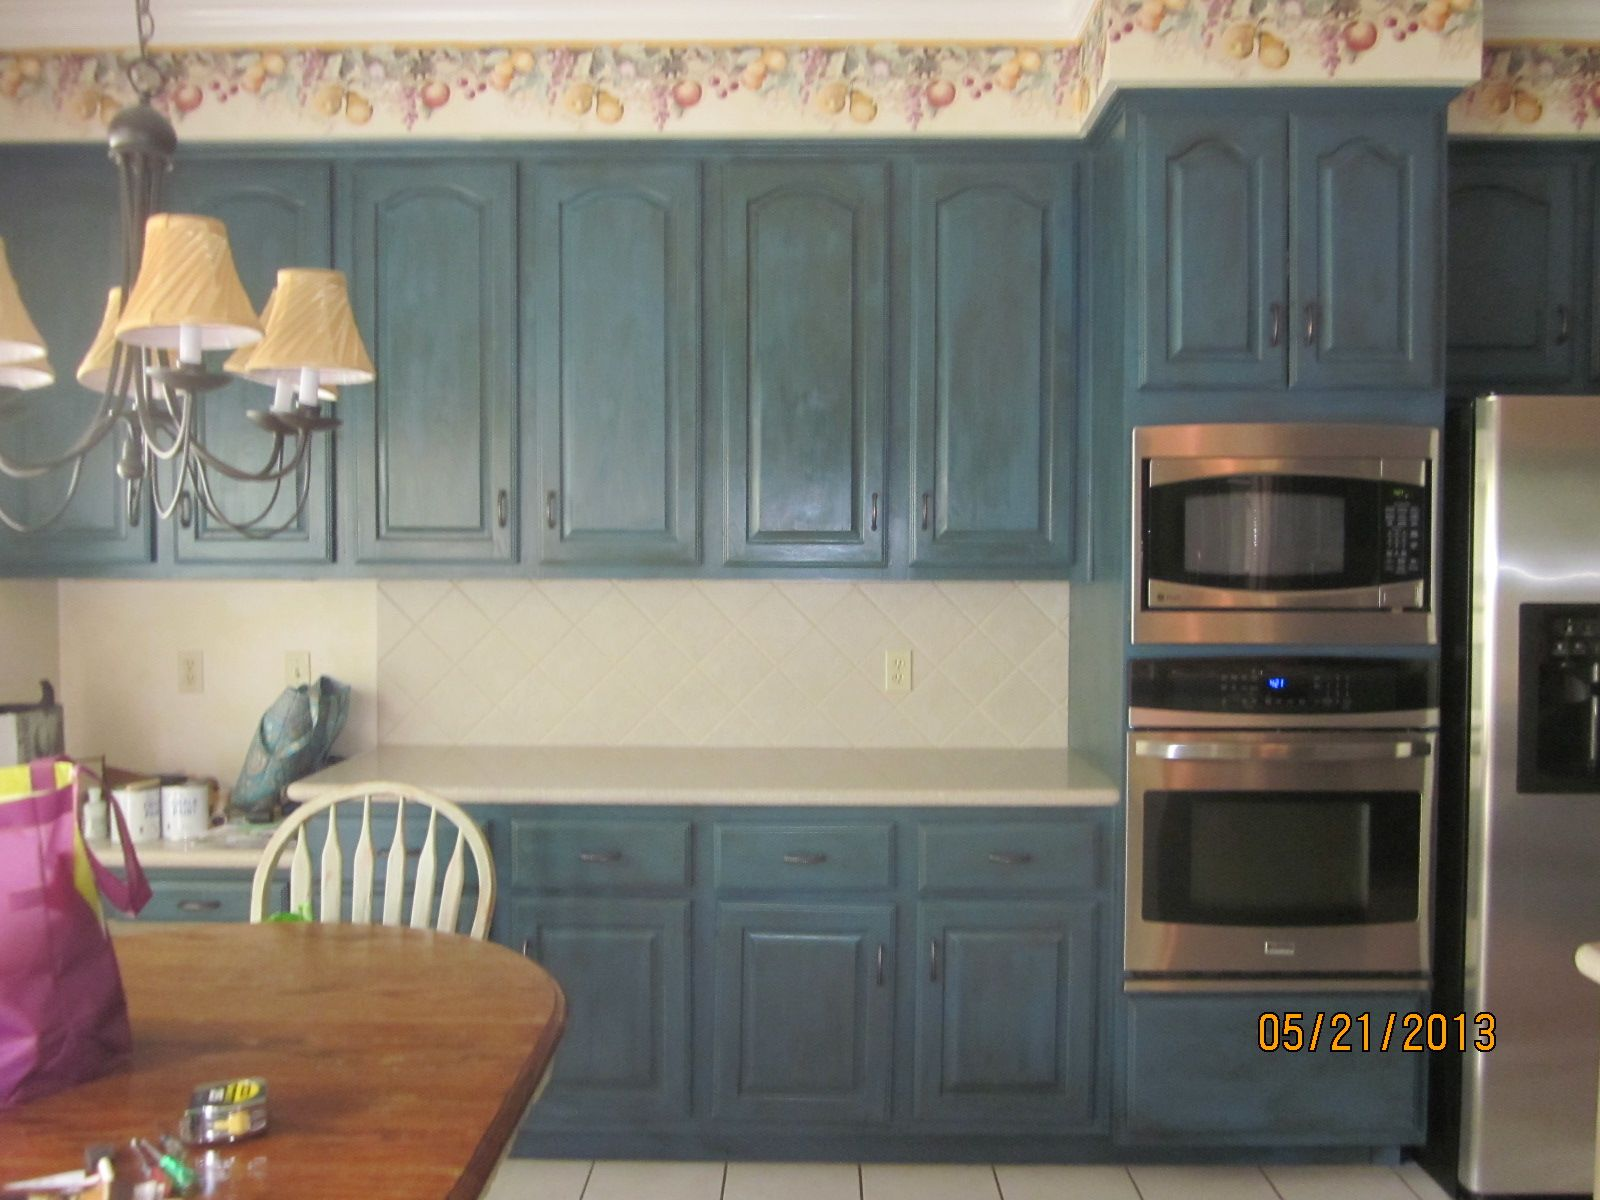 Kitchen Cabinets Painted She Used Annie Sloan Chalk Paint Aubusson Blue With Dark Wax Over It Kitchen Diy Makeover Diy Kitchen Cabinets Kitchen Cabinets